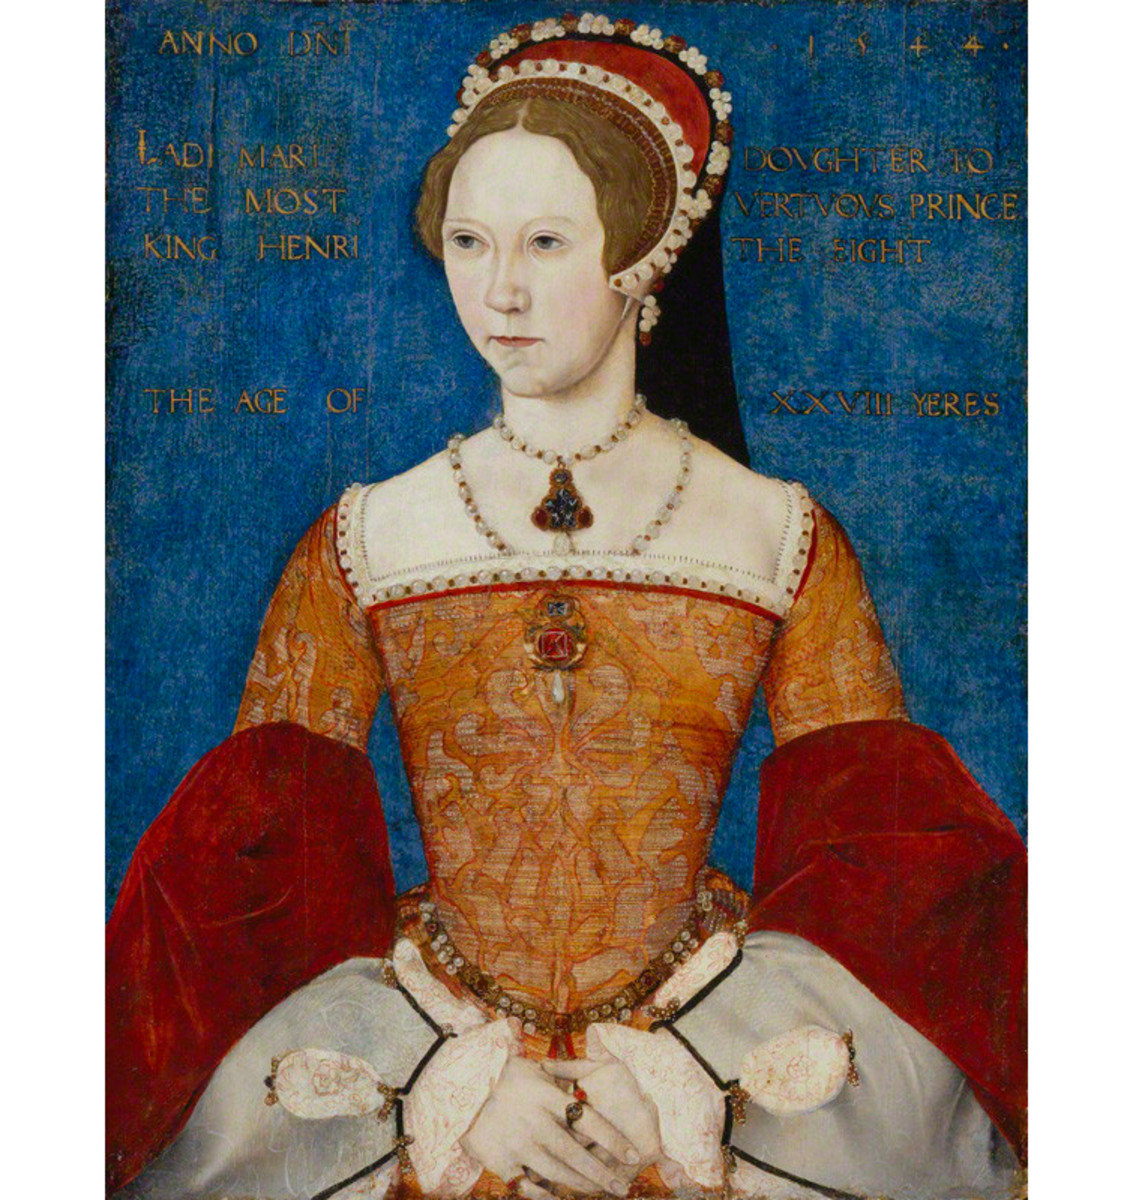 Quite misunderstood and justly earned, Mary I